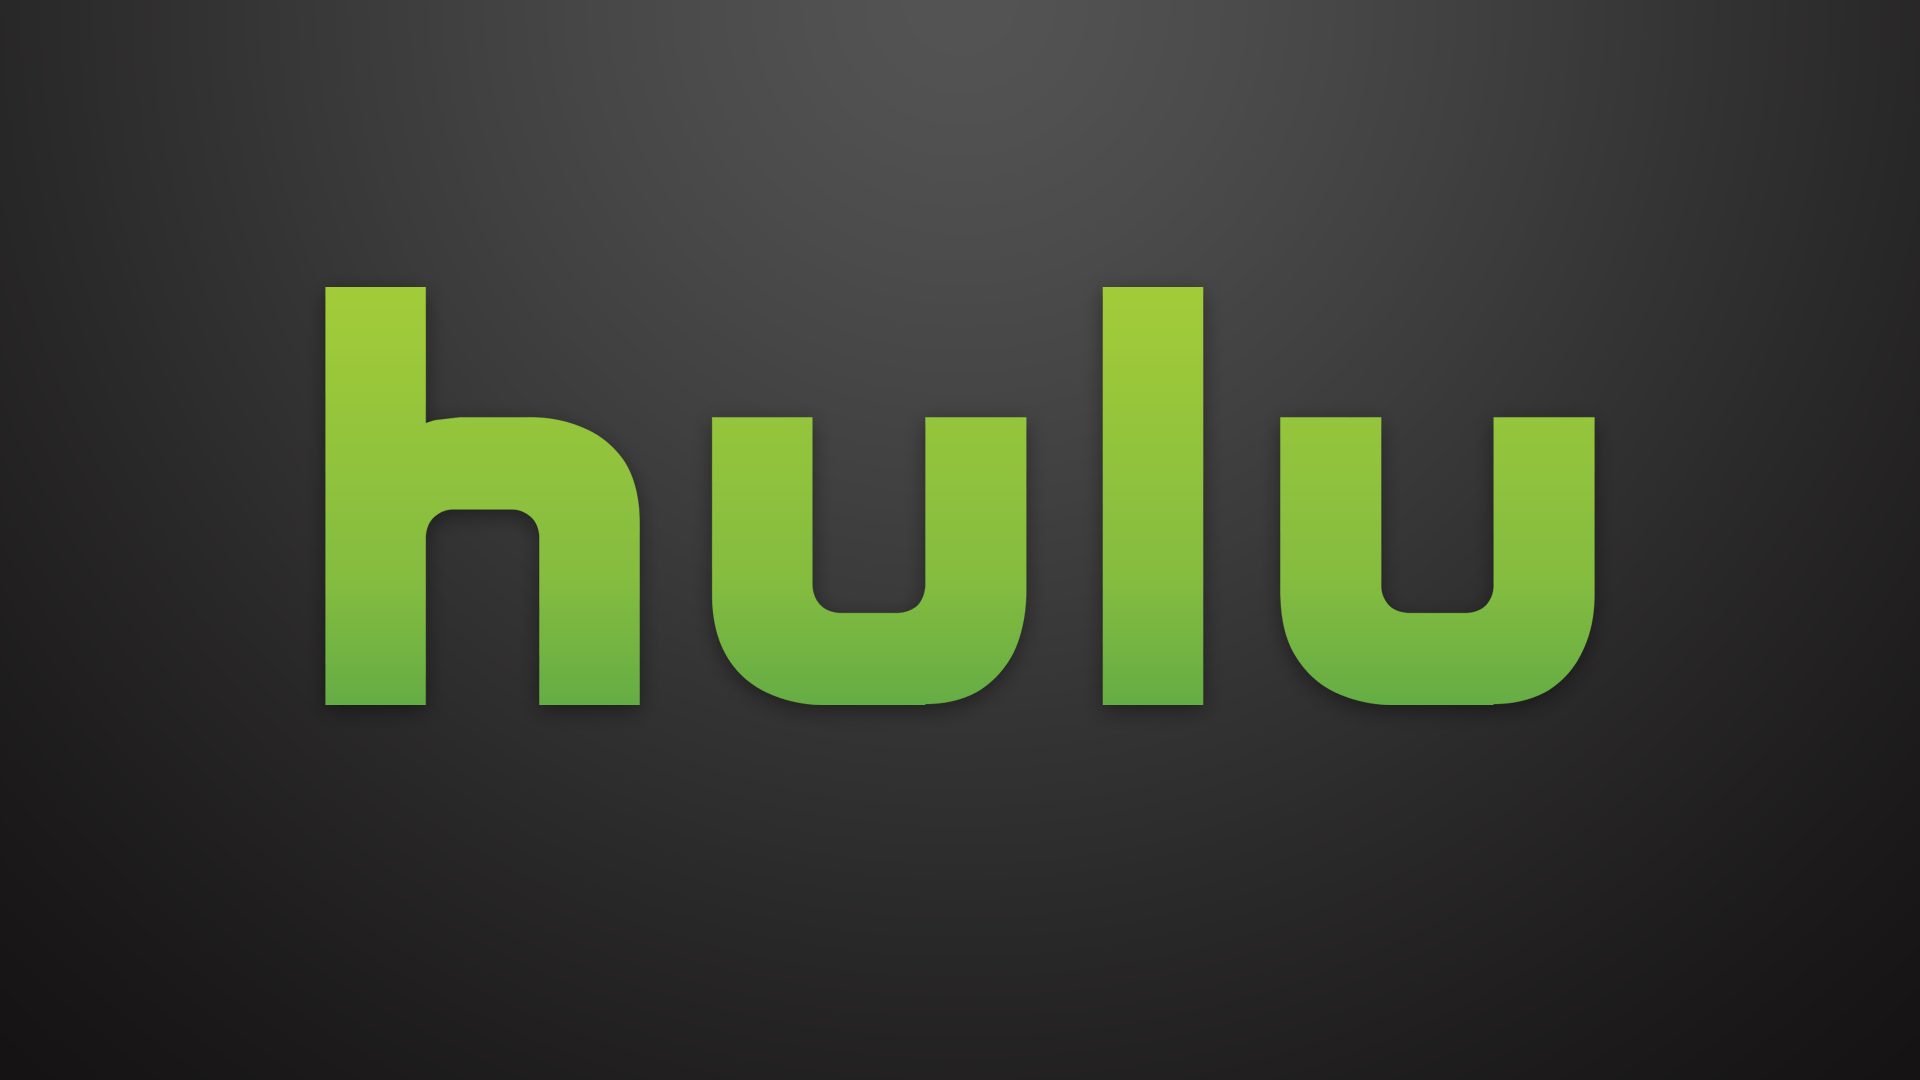 Randy Freer going to step down as CEO of Hulu